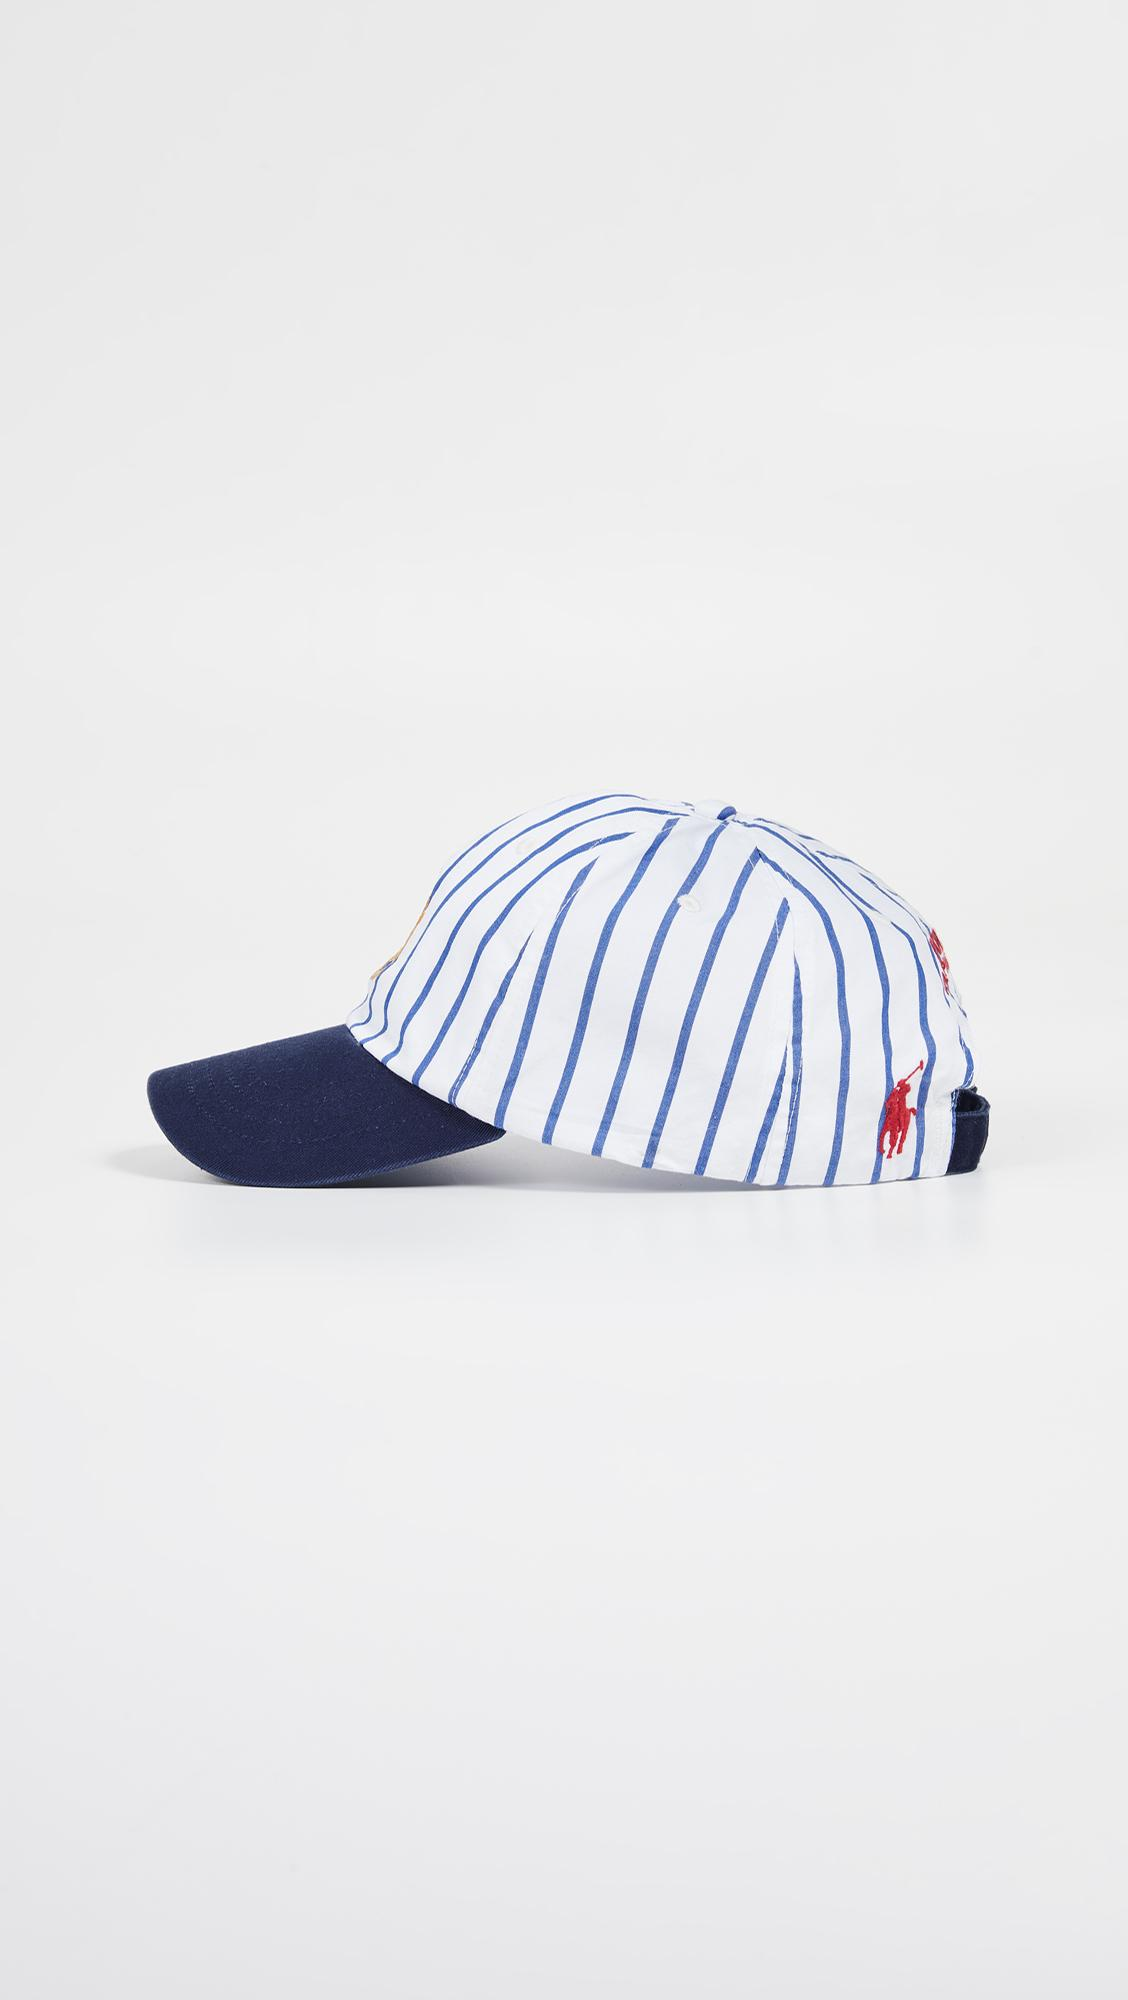 c7e4322b258 Polo Ralph Lauren - Blue Baseball Cap With Navy Peak And Embroidered Crest  In White . View fullscreen